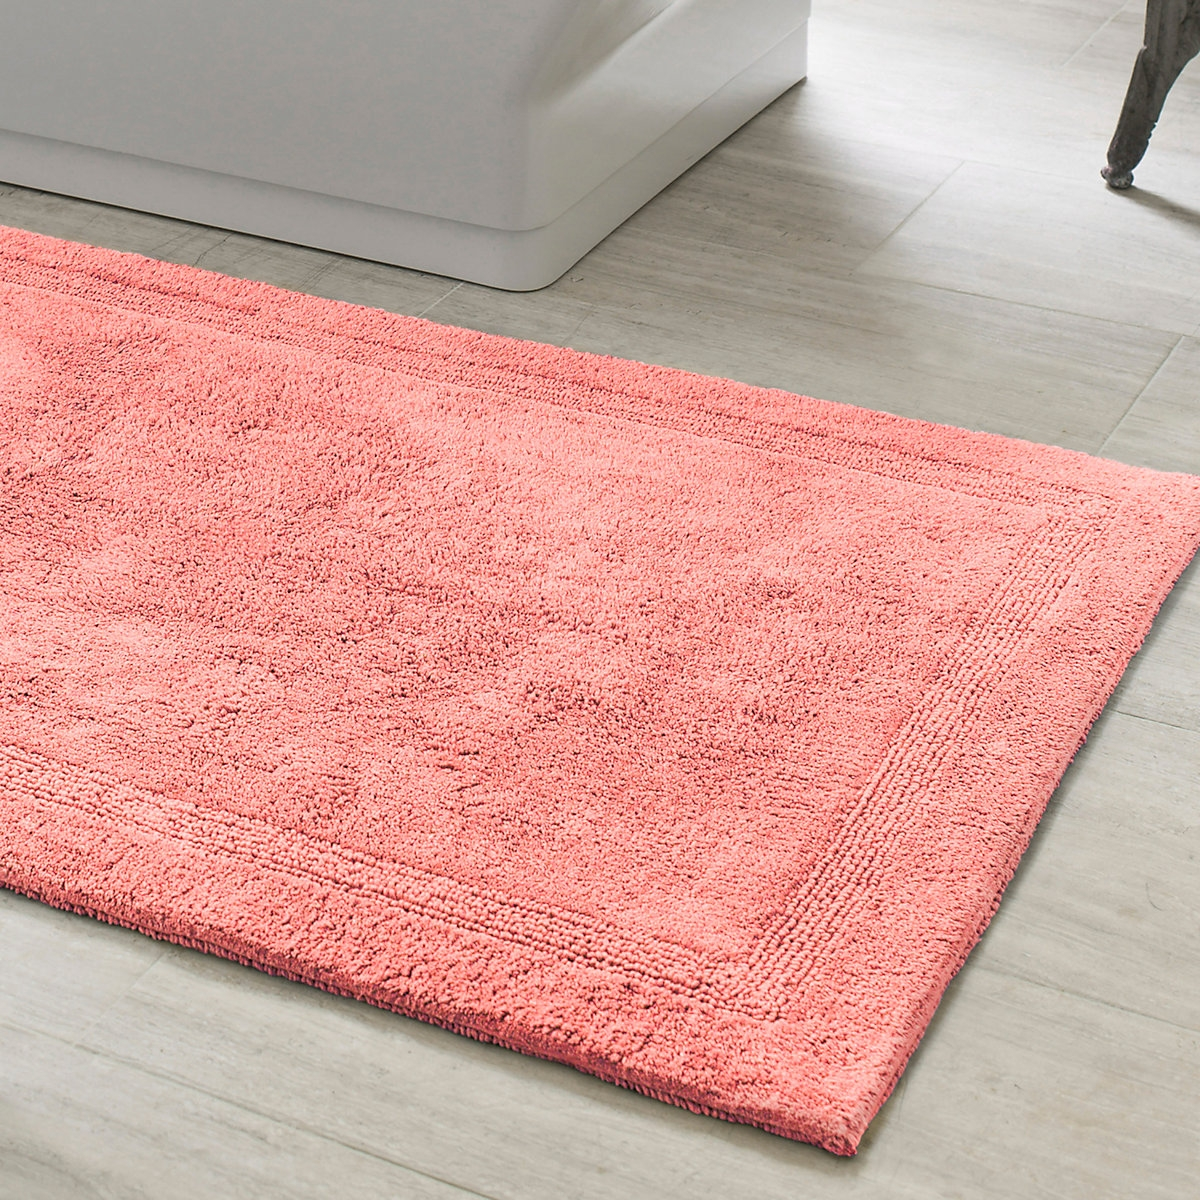 Plum Bath Mat And Towels